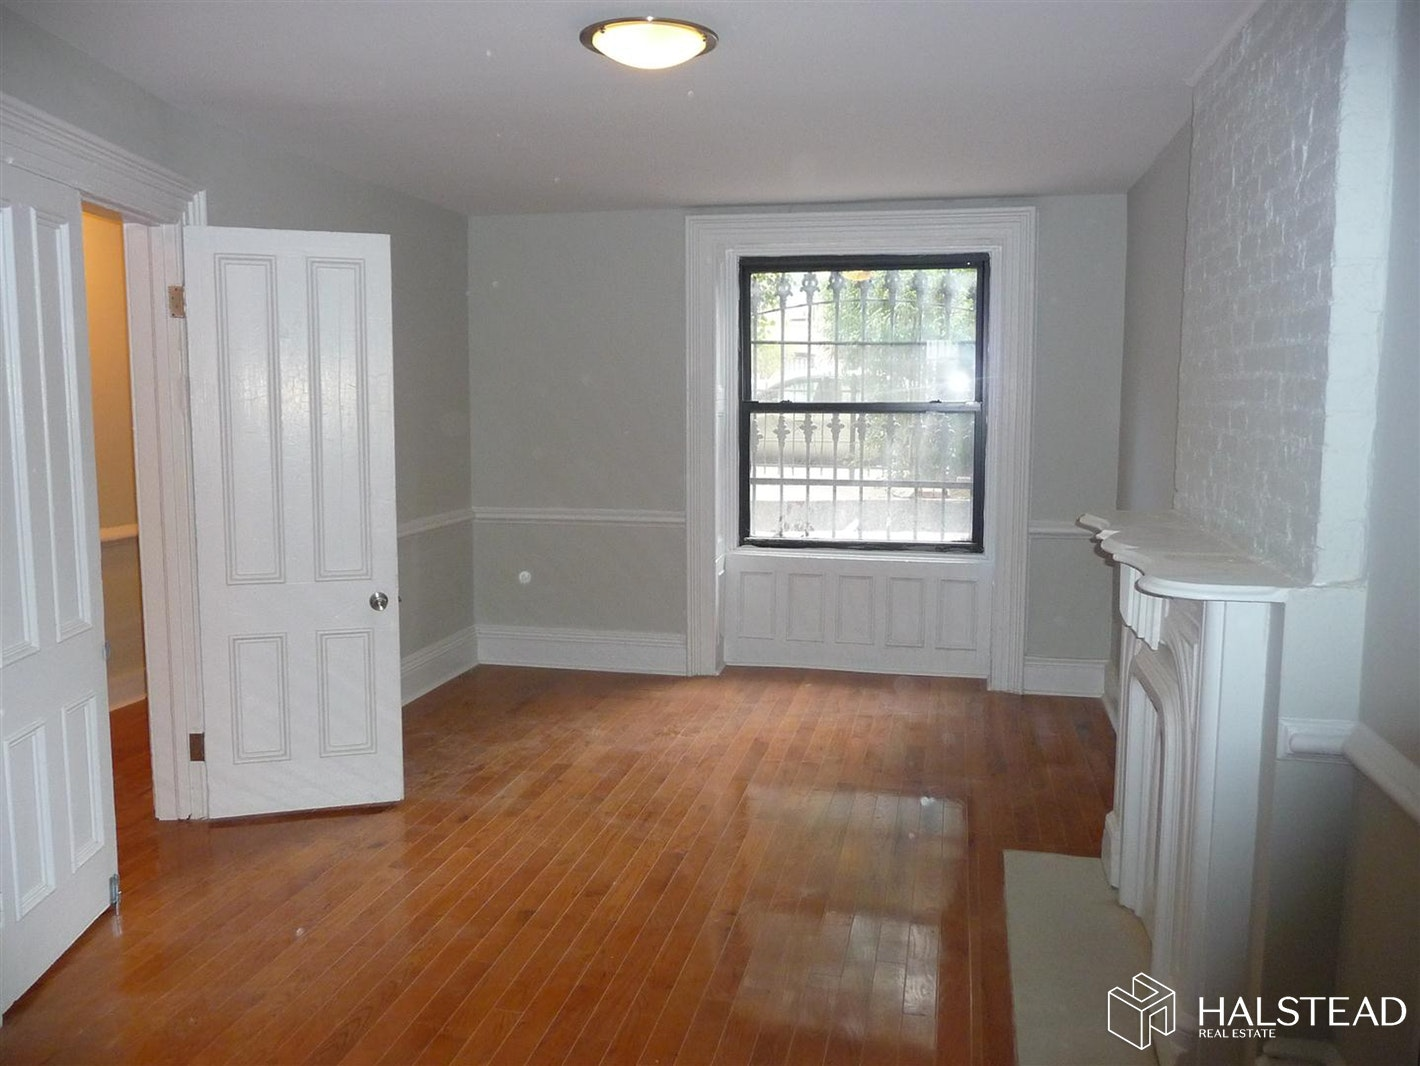 476 CLASSON AVENUE 1, Clinton Hill, $2,200, Web #: 19940756